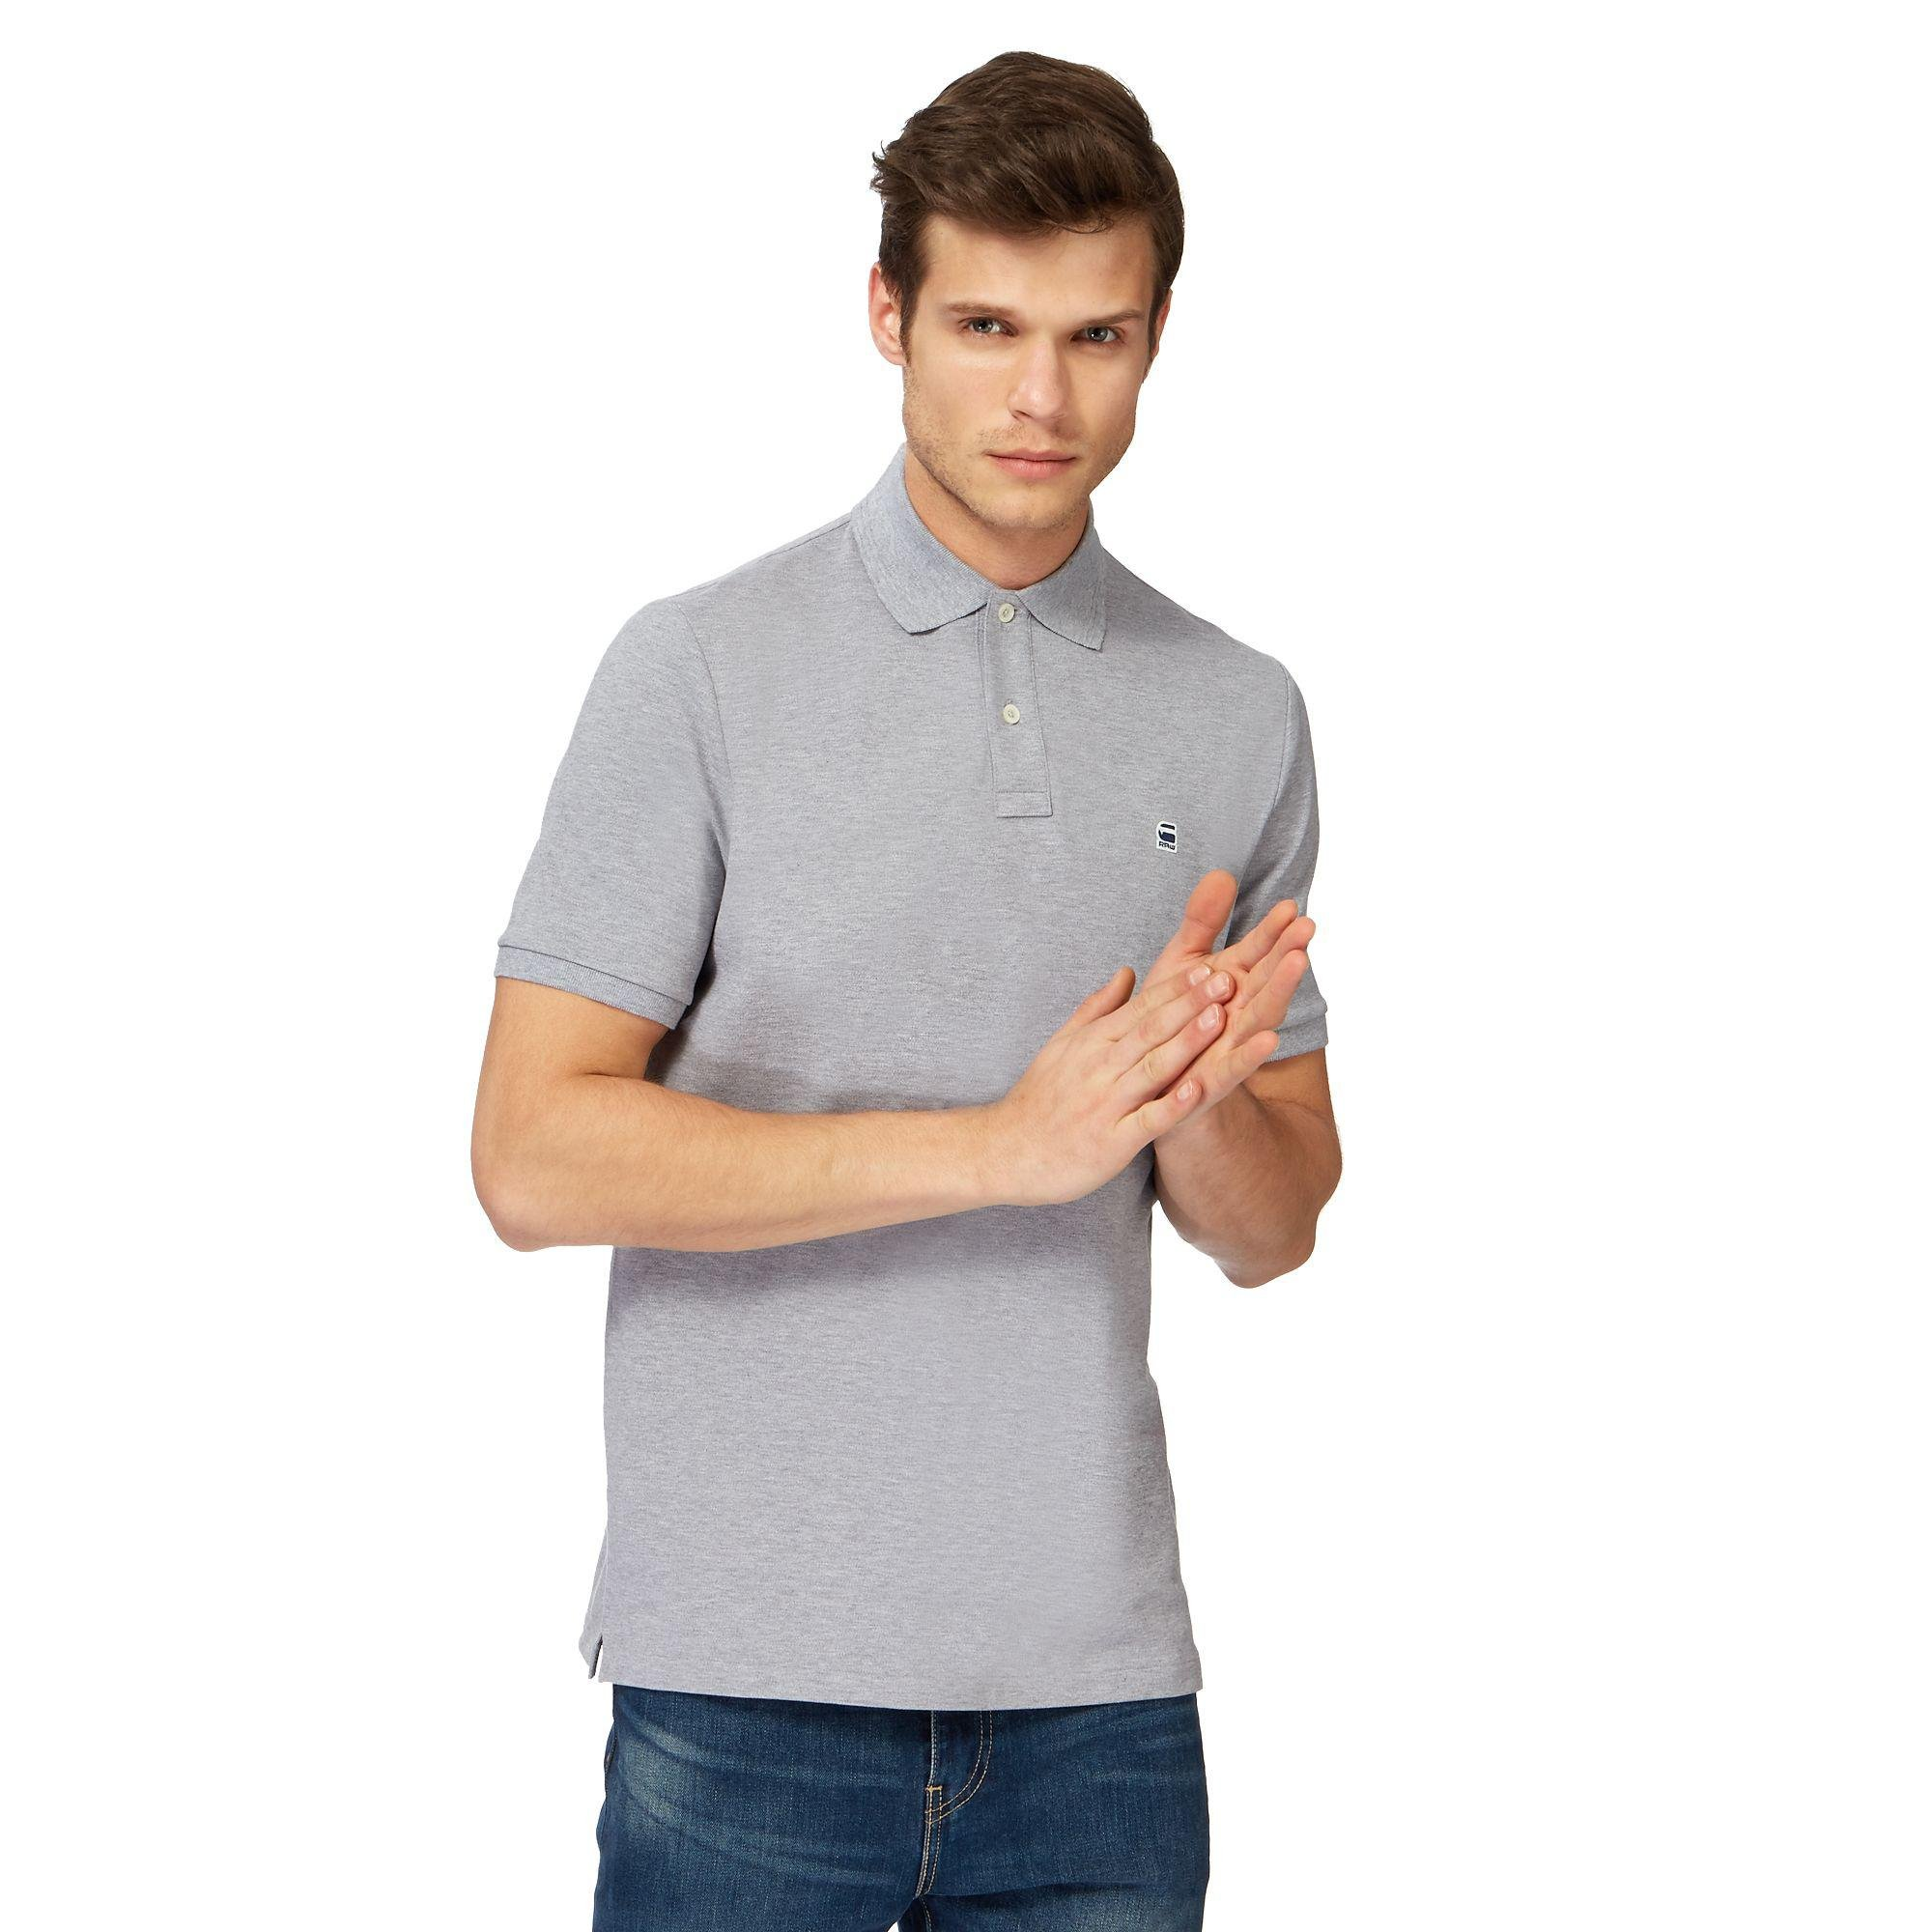 e8bfe370833 G-Star RAW Grey Embroidered Logo Slim Fit Polo Shirt in Gray for Men ...